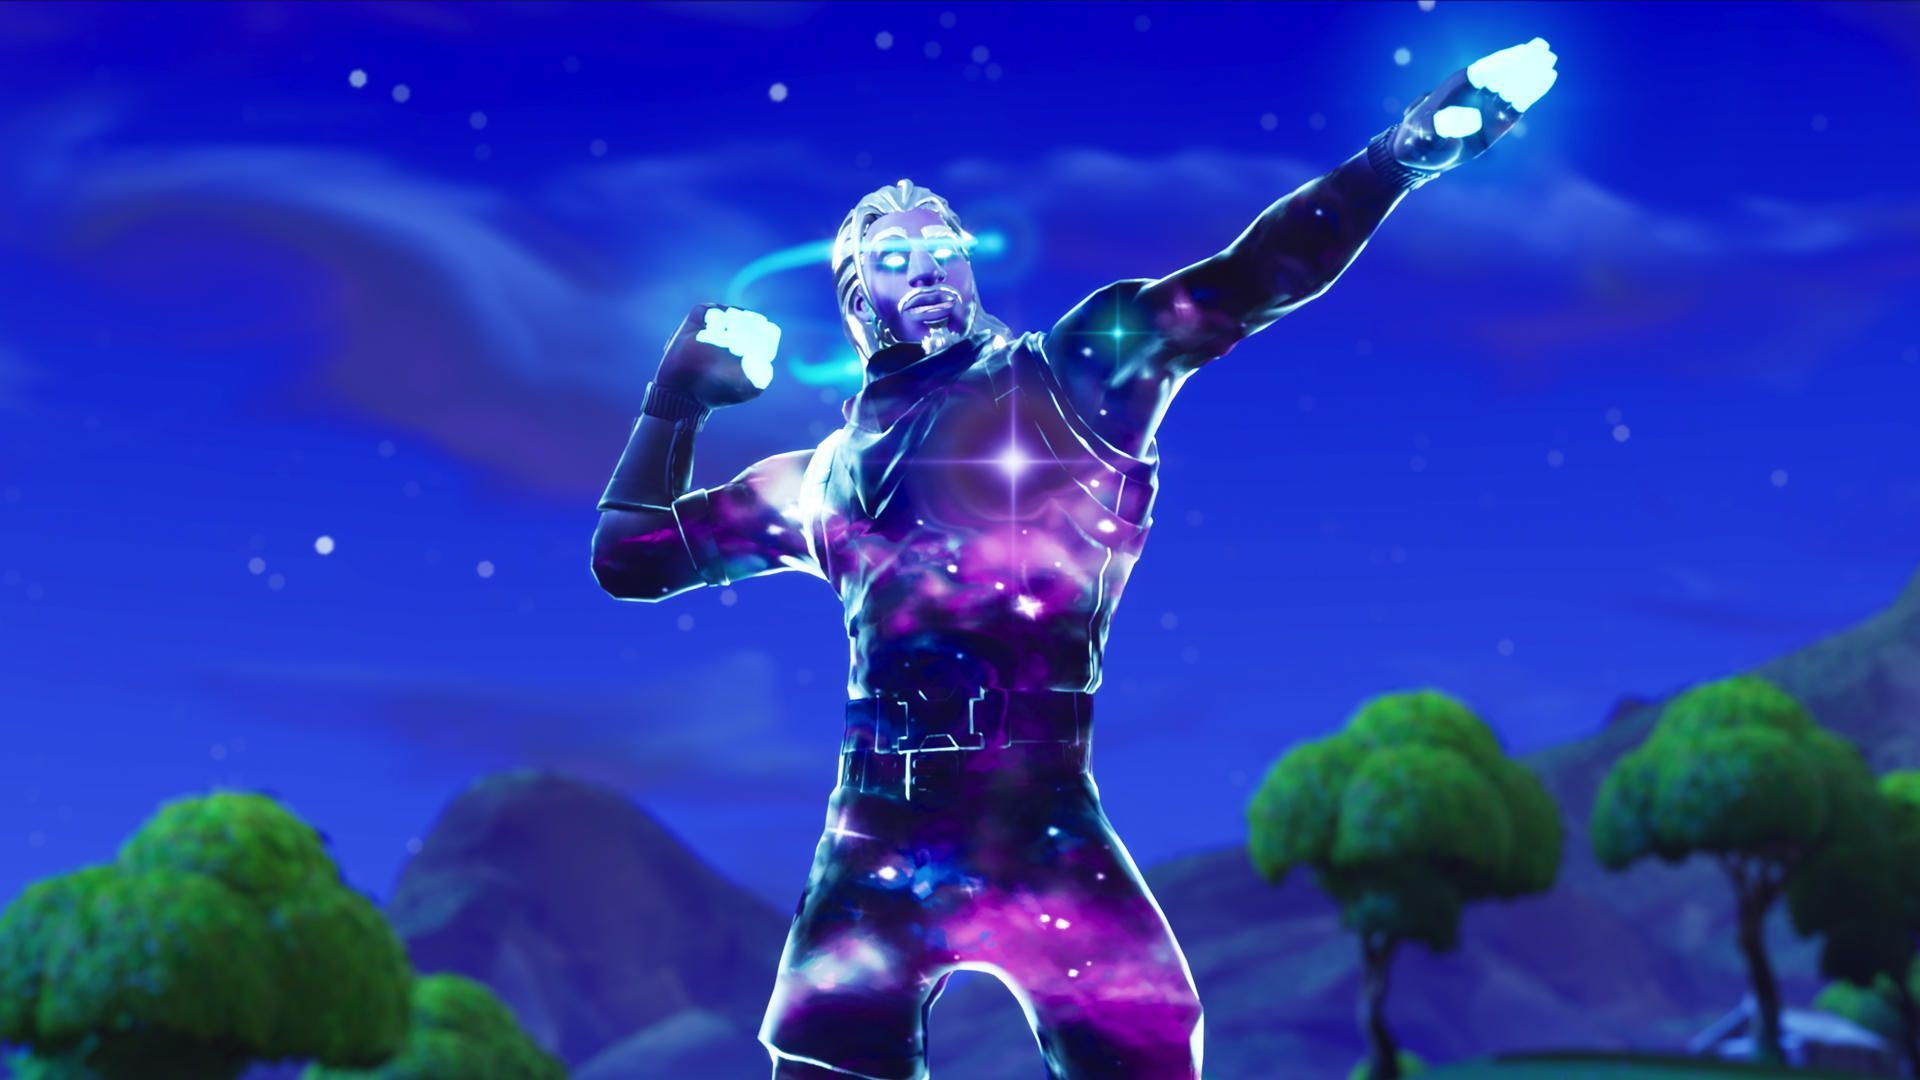 Fortnite Galaxy Skin Wallpapers Top Free Fortnite Galaxy Skin Backgrounds Wallpaperaccess